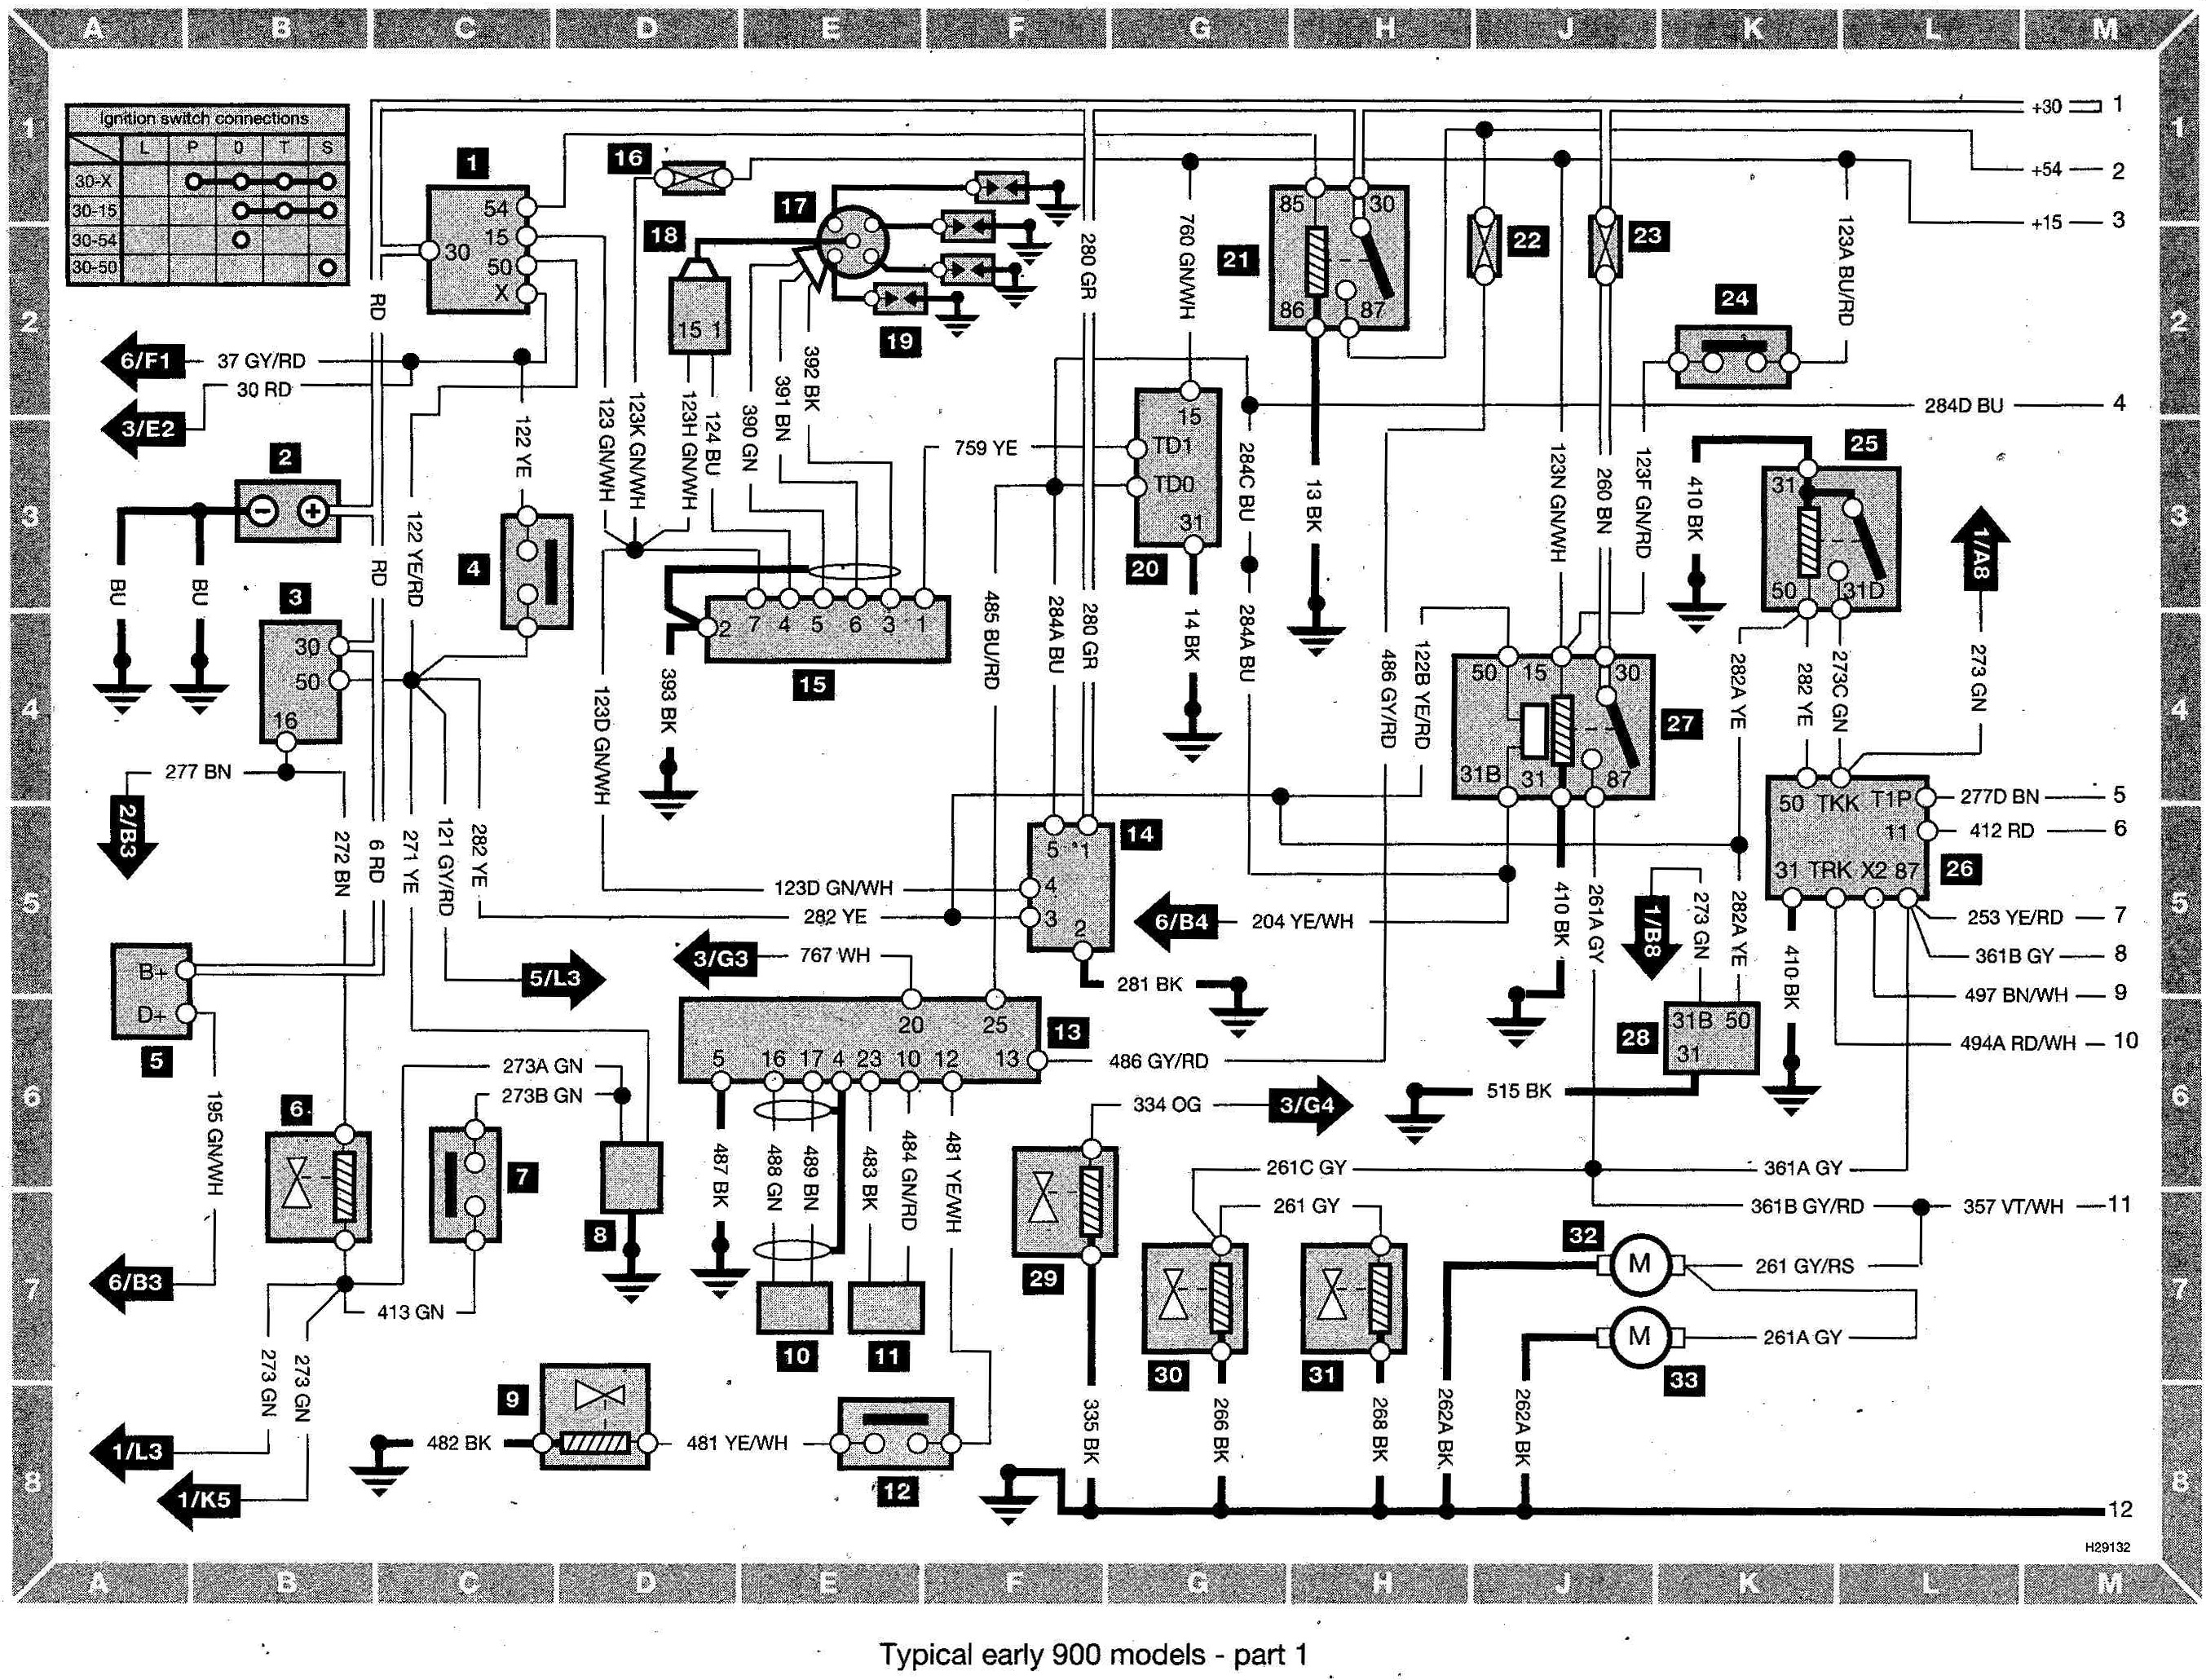 saab wiring diagram 9 5 wiring diagram schematics saab 900 ignition saab wiring diagrams wiring diagram schematics speaker wiring diagram 3 index of saab saab 900 wiring